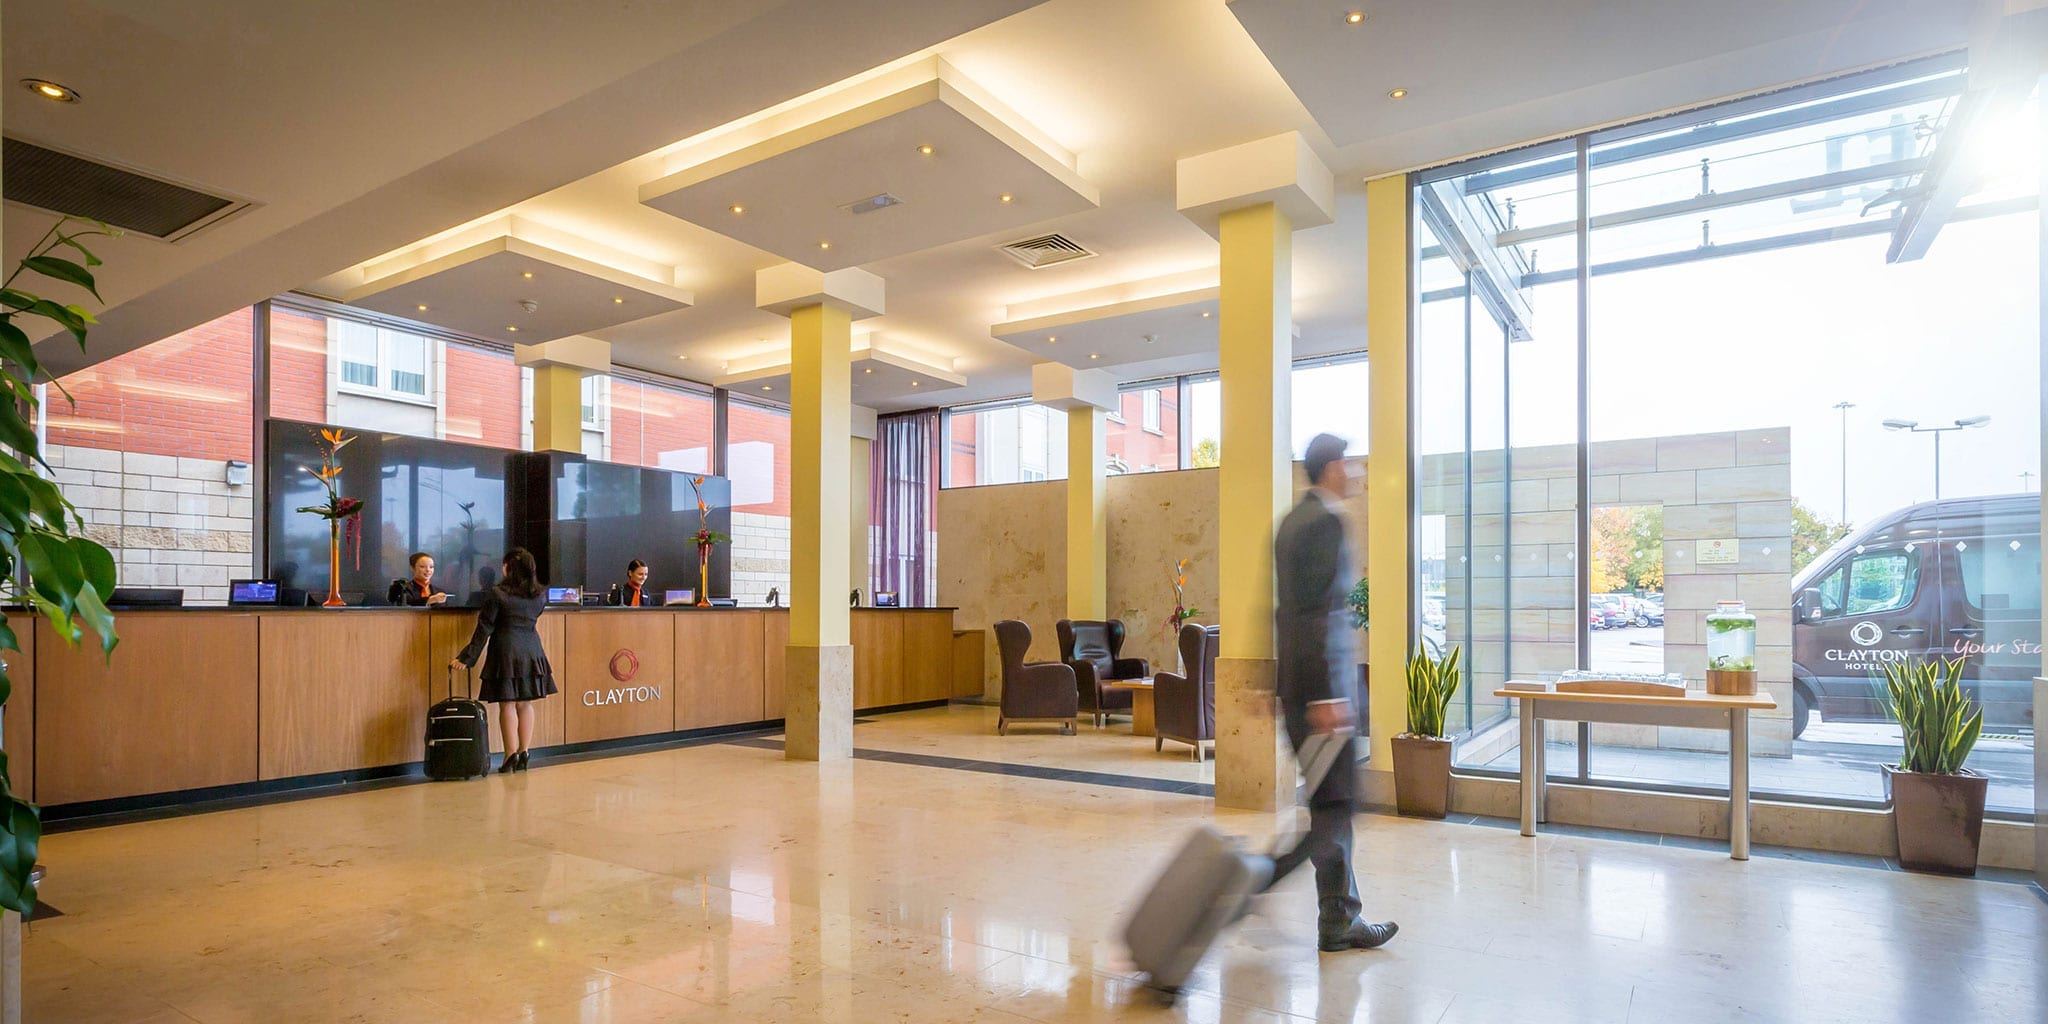 Guest checking in to Clayton Hotel Manchester Airport